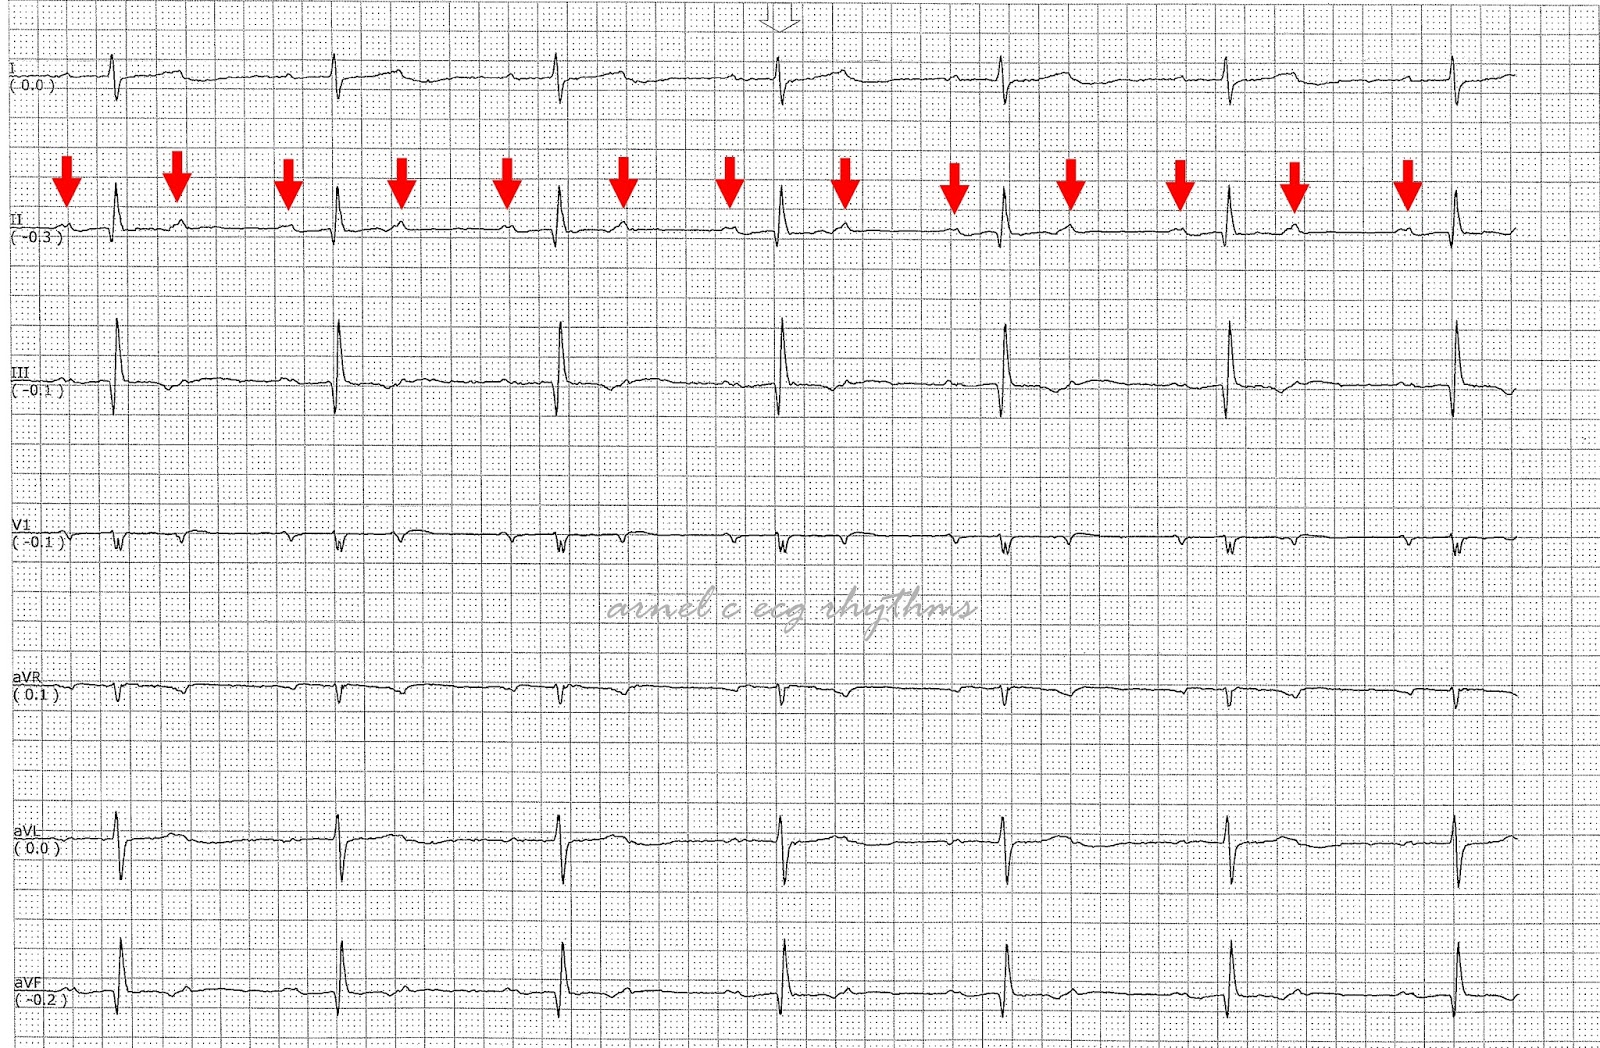 ECG Rhythms: Complete Heart Block or Not?